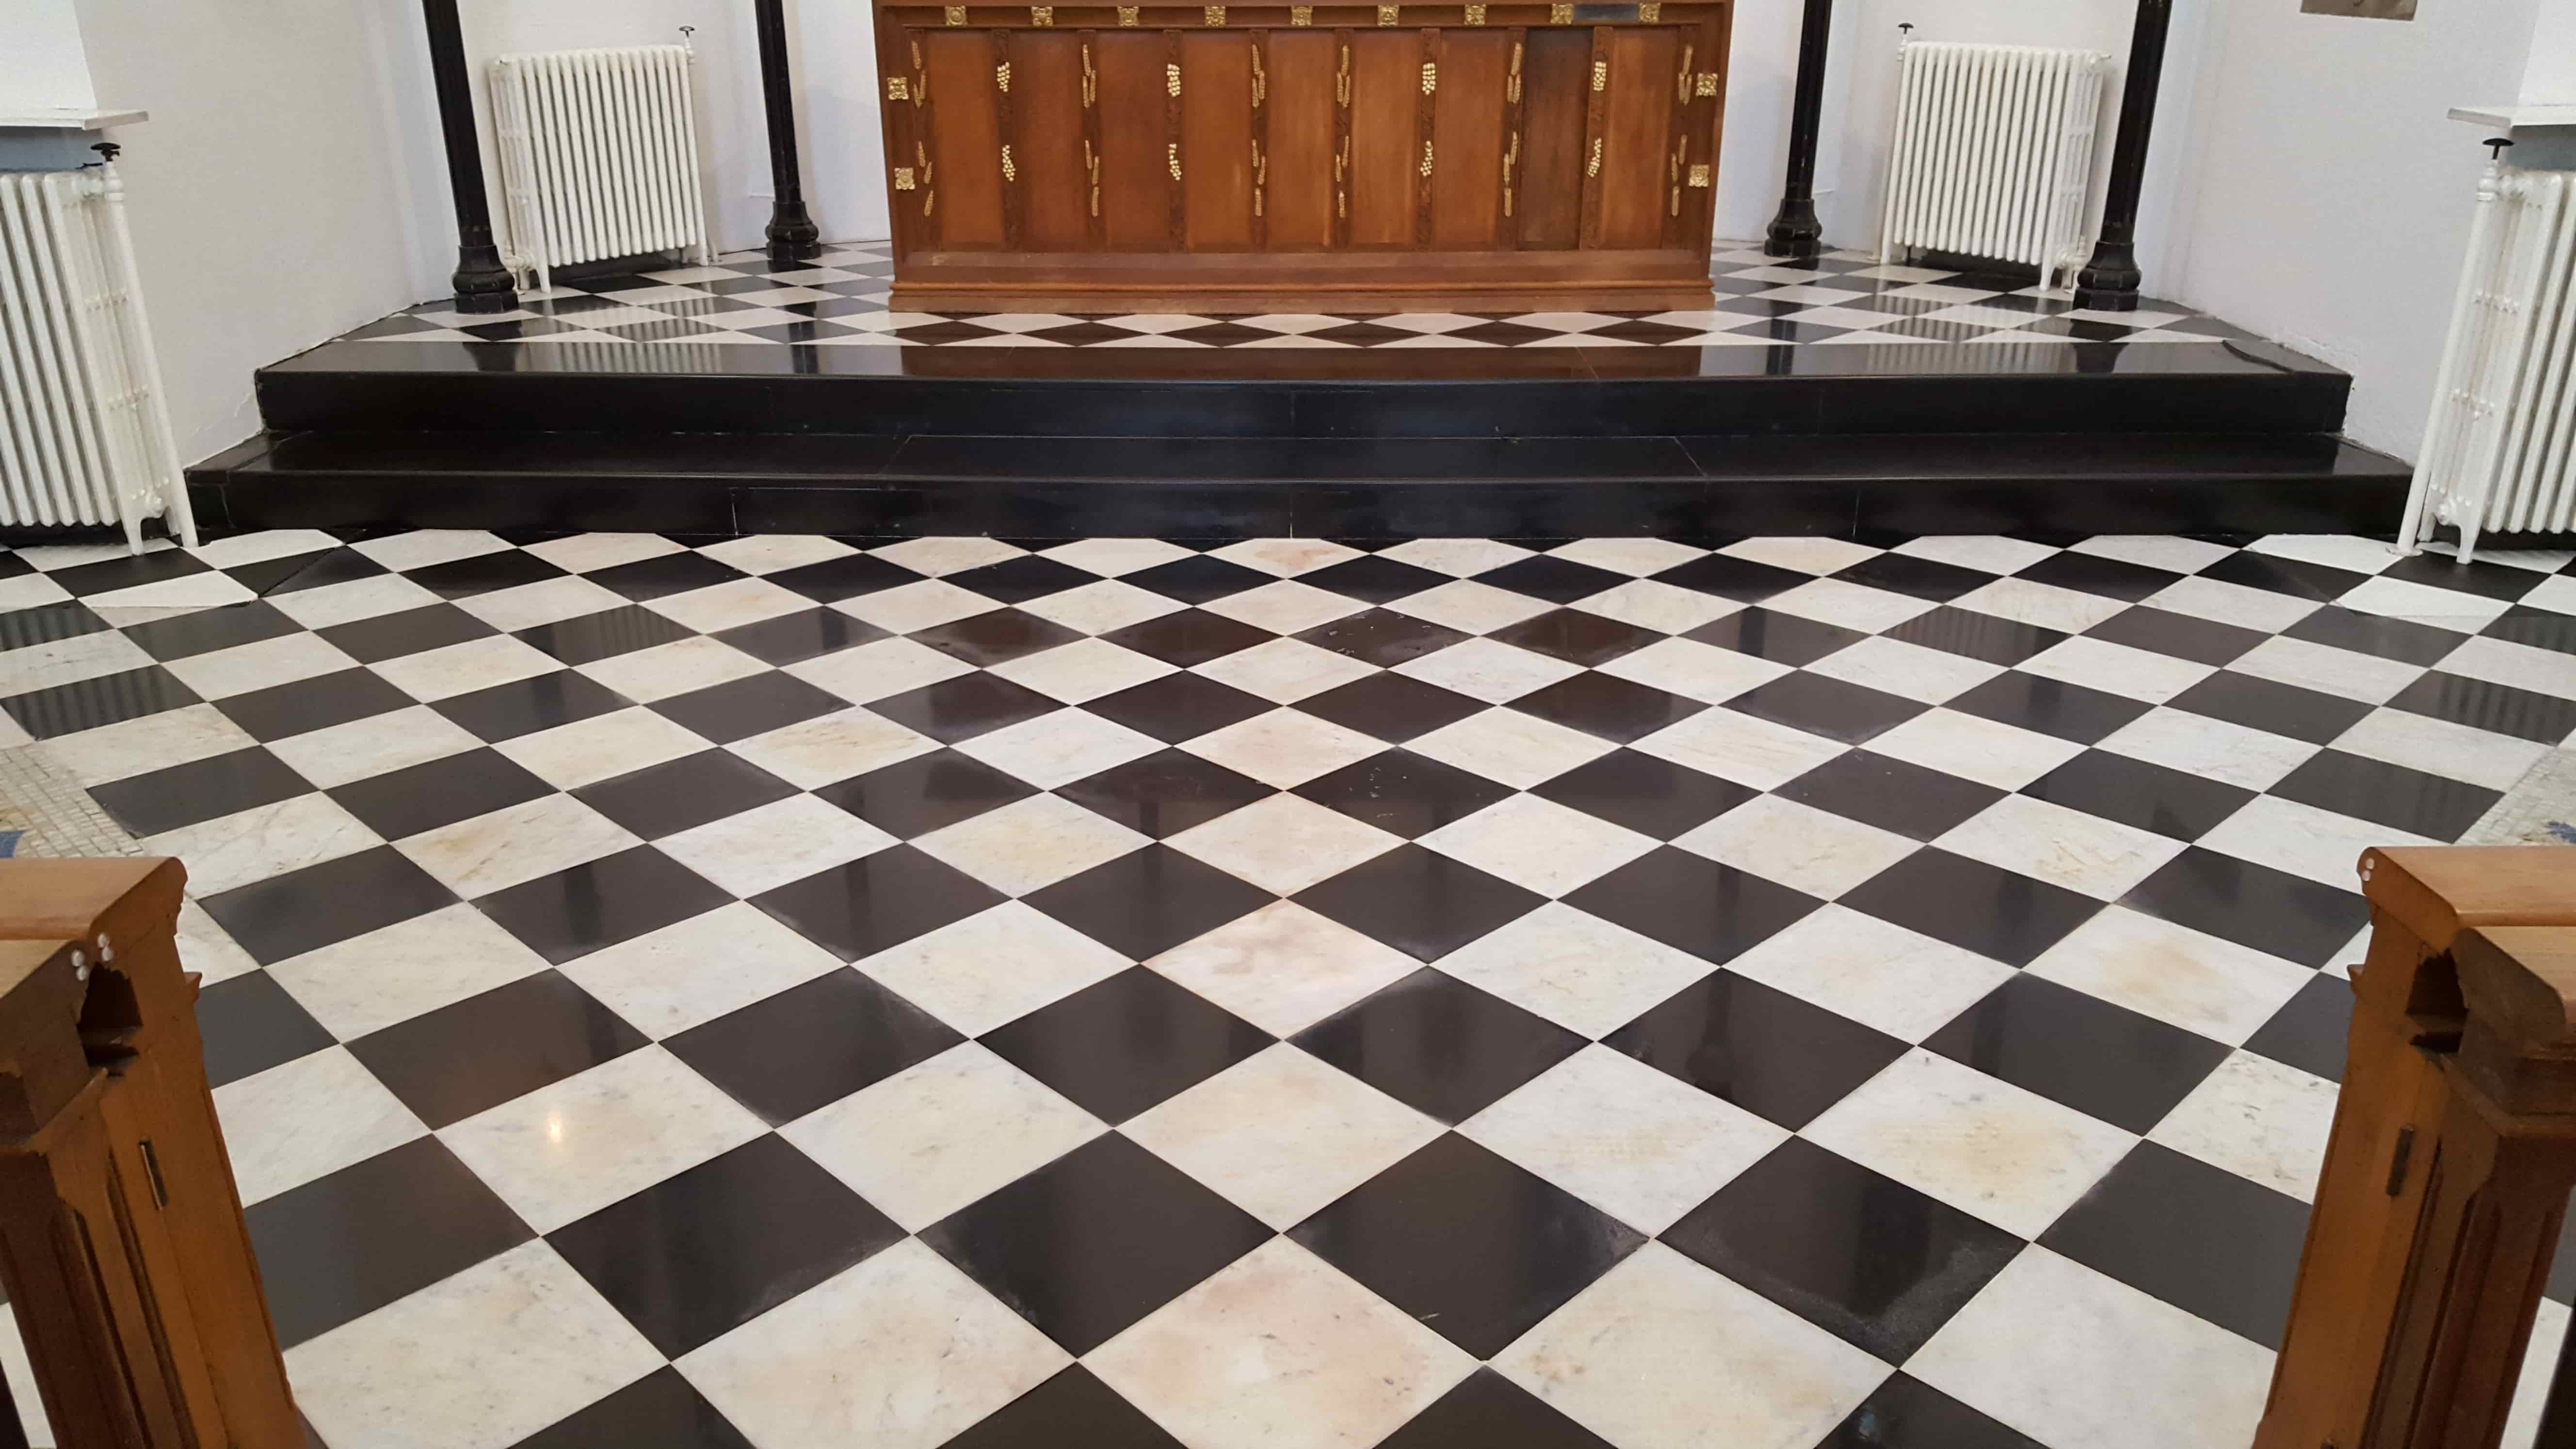 Marble Church Floor After Renovation